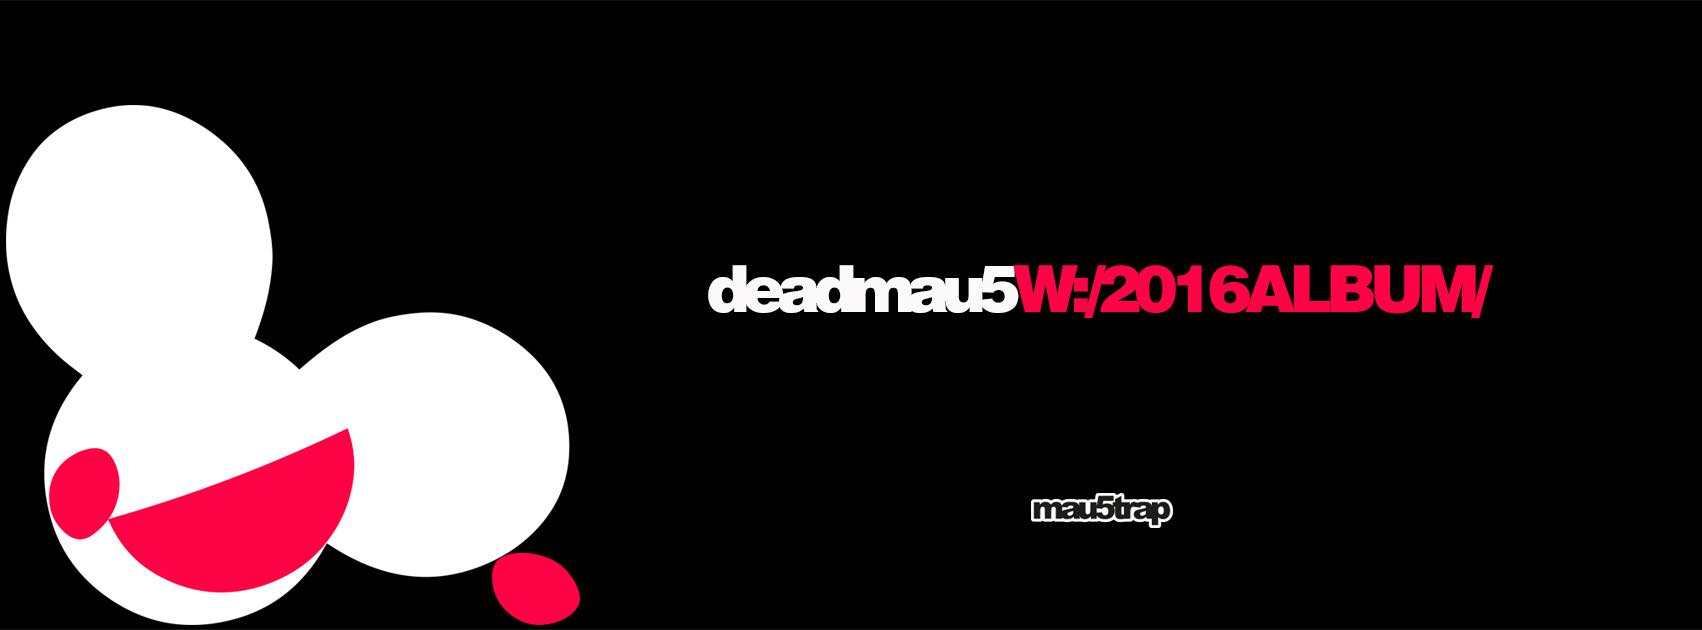 Listen to Deadmau5 New Album Preview